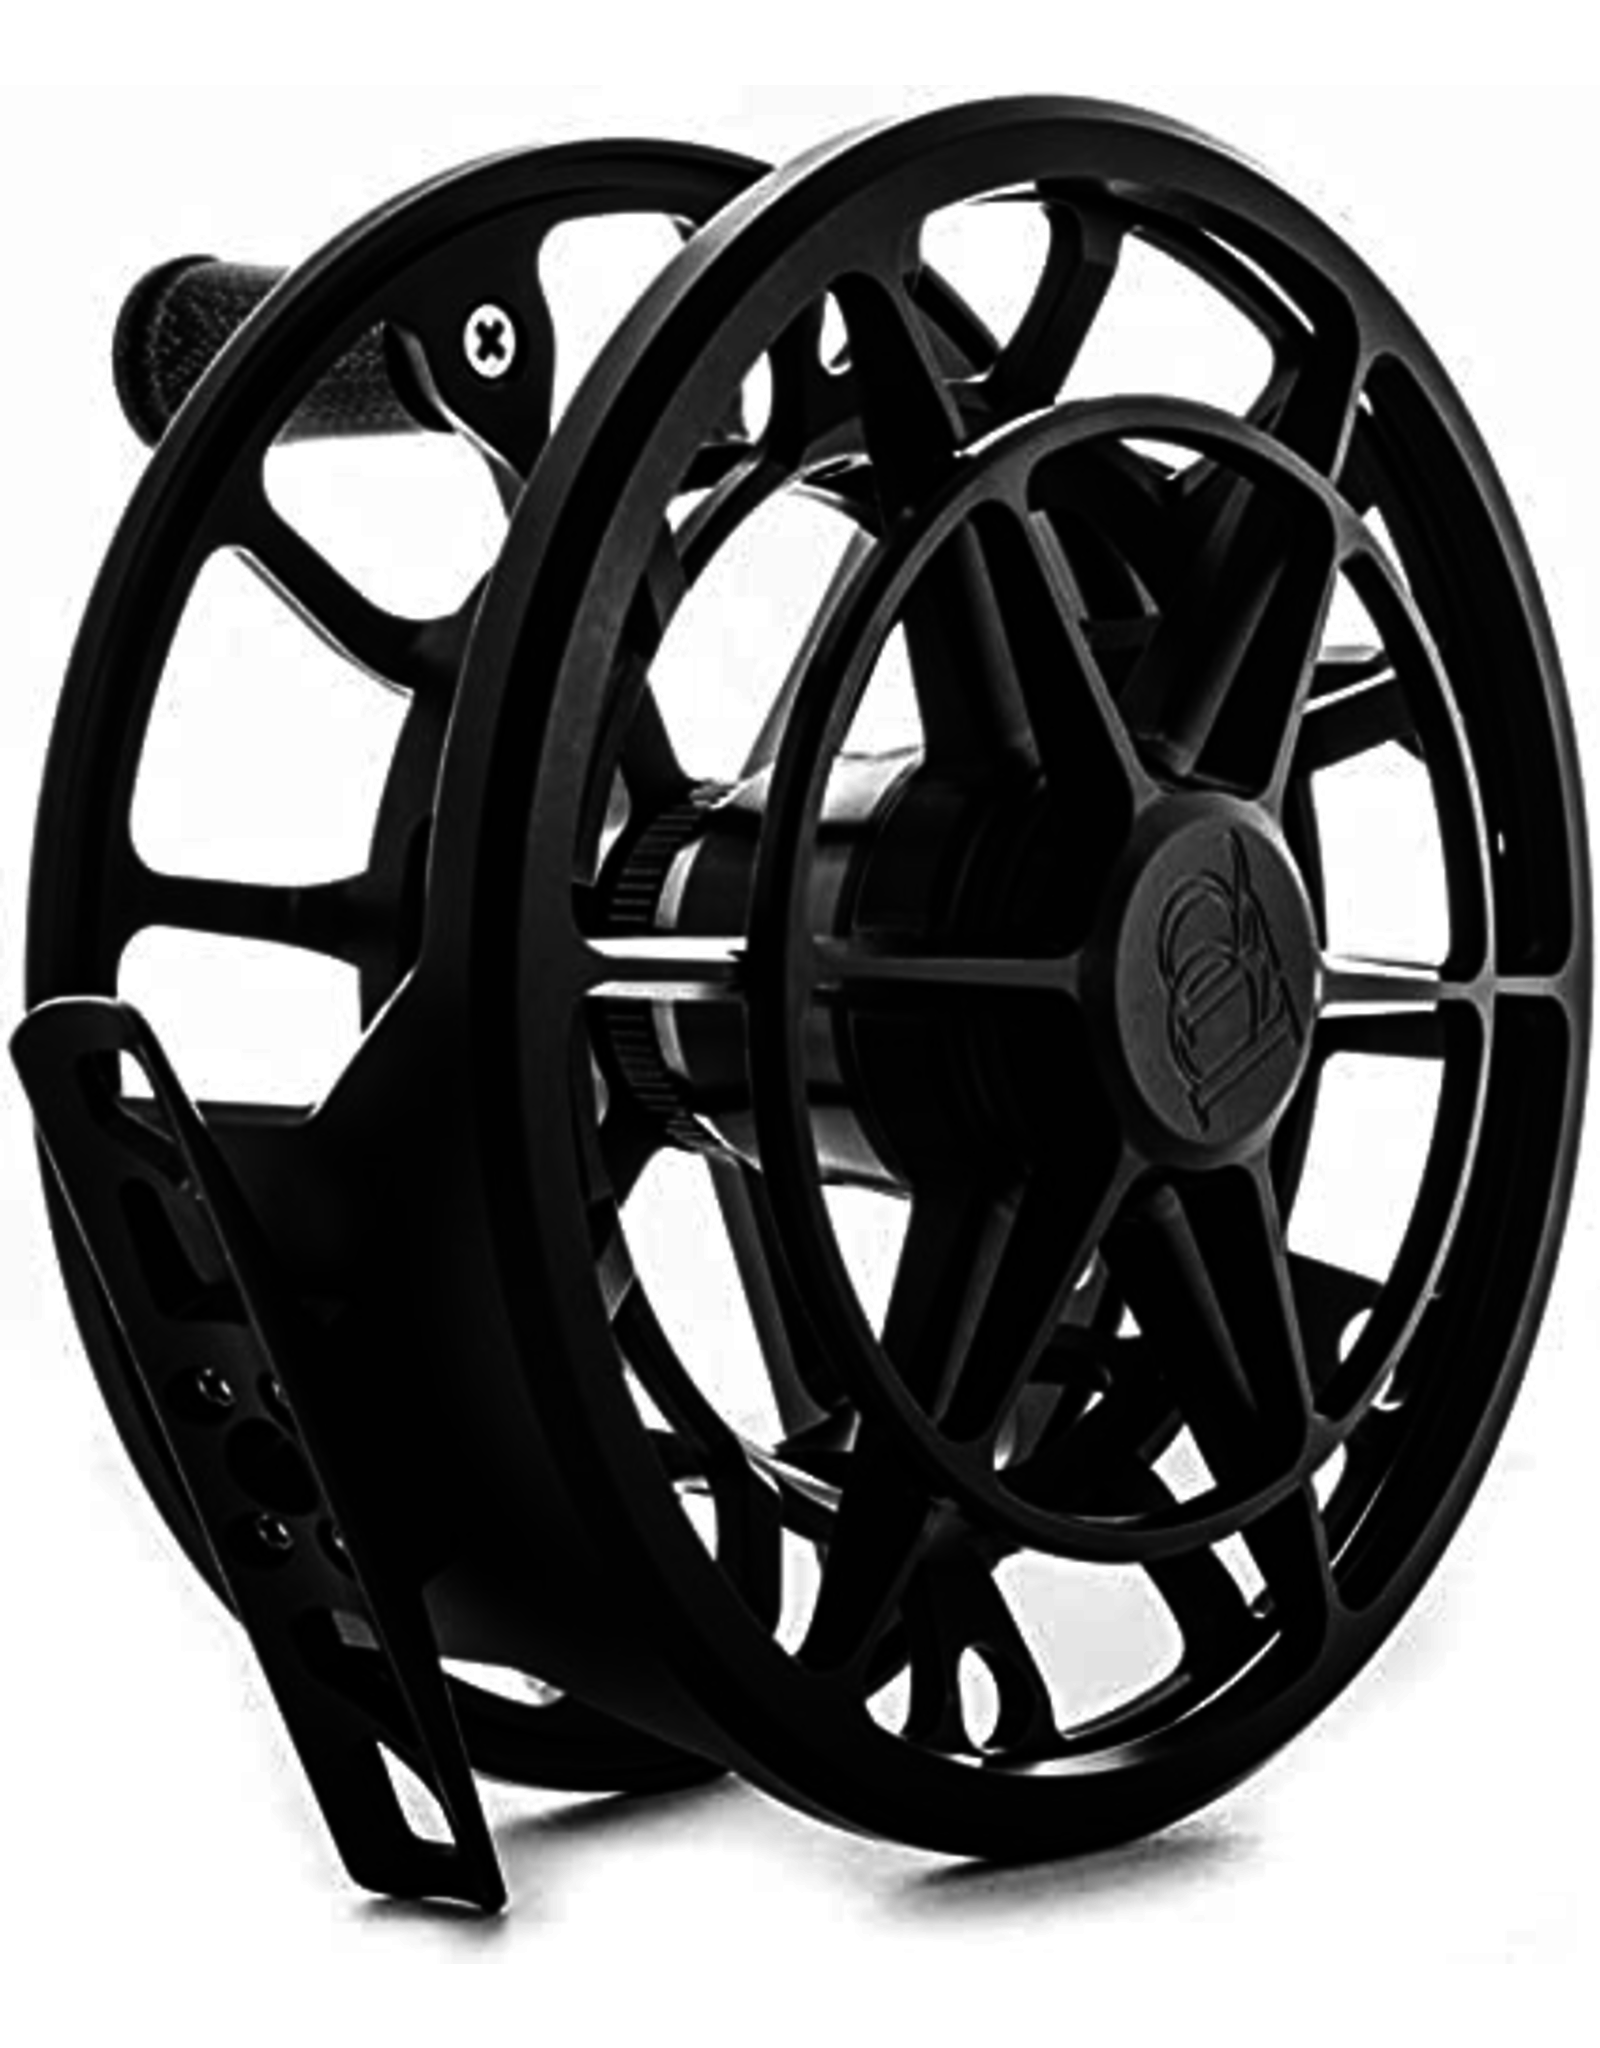 Ross Ross Evolution R 5/6 Reel (Matte Black)